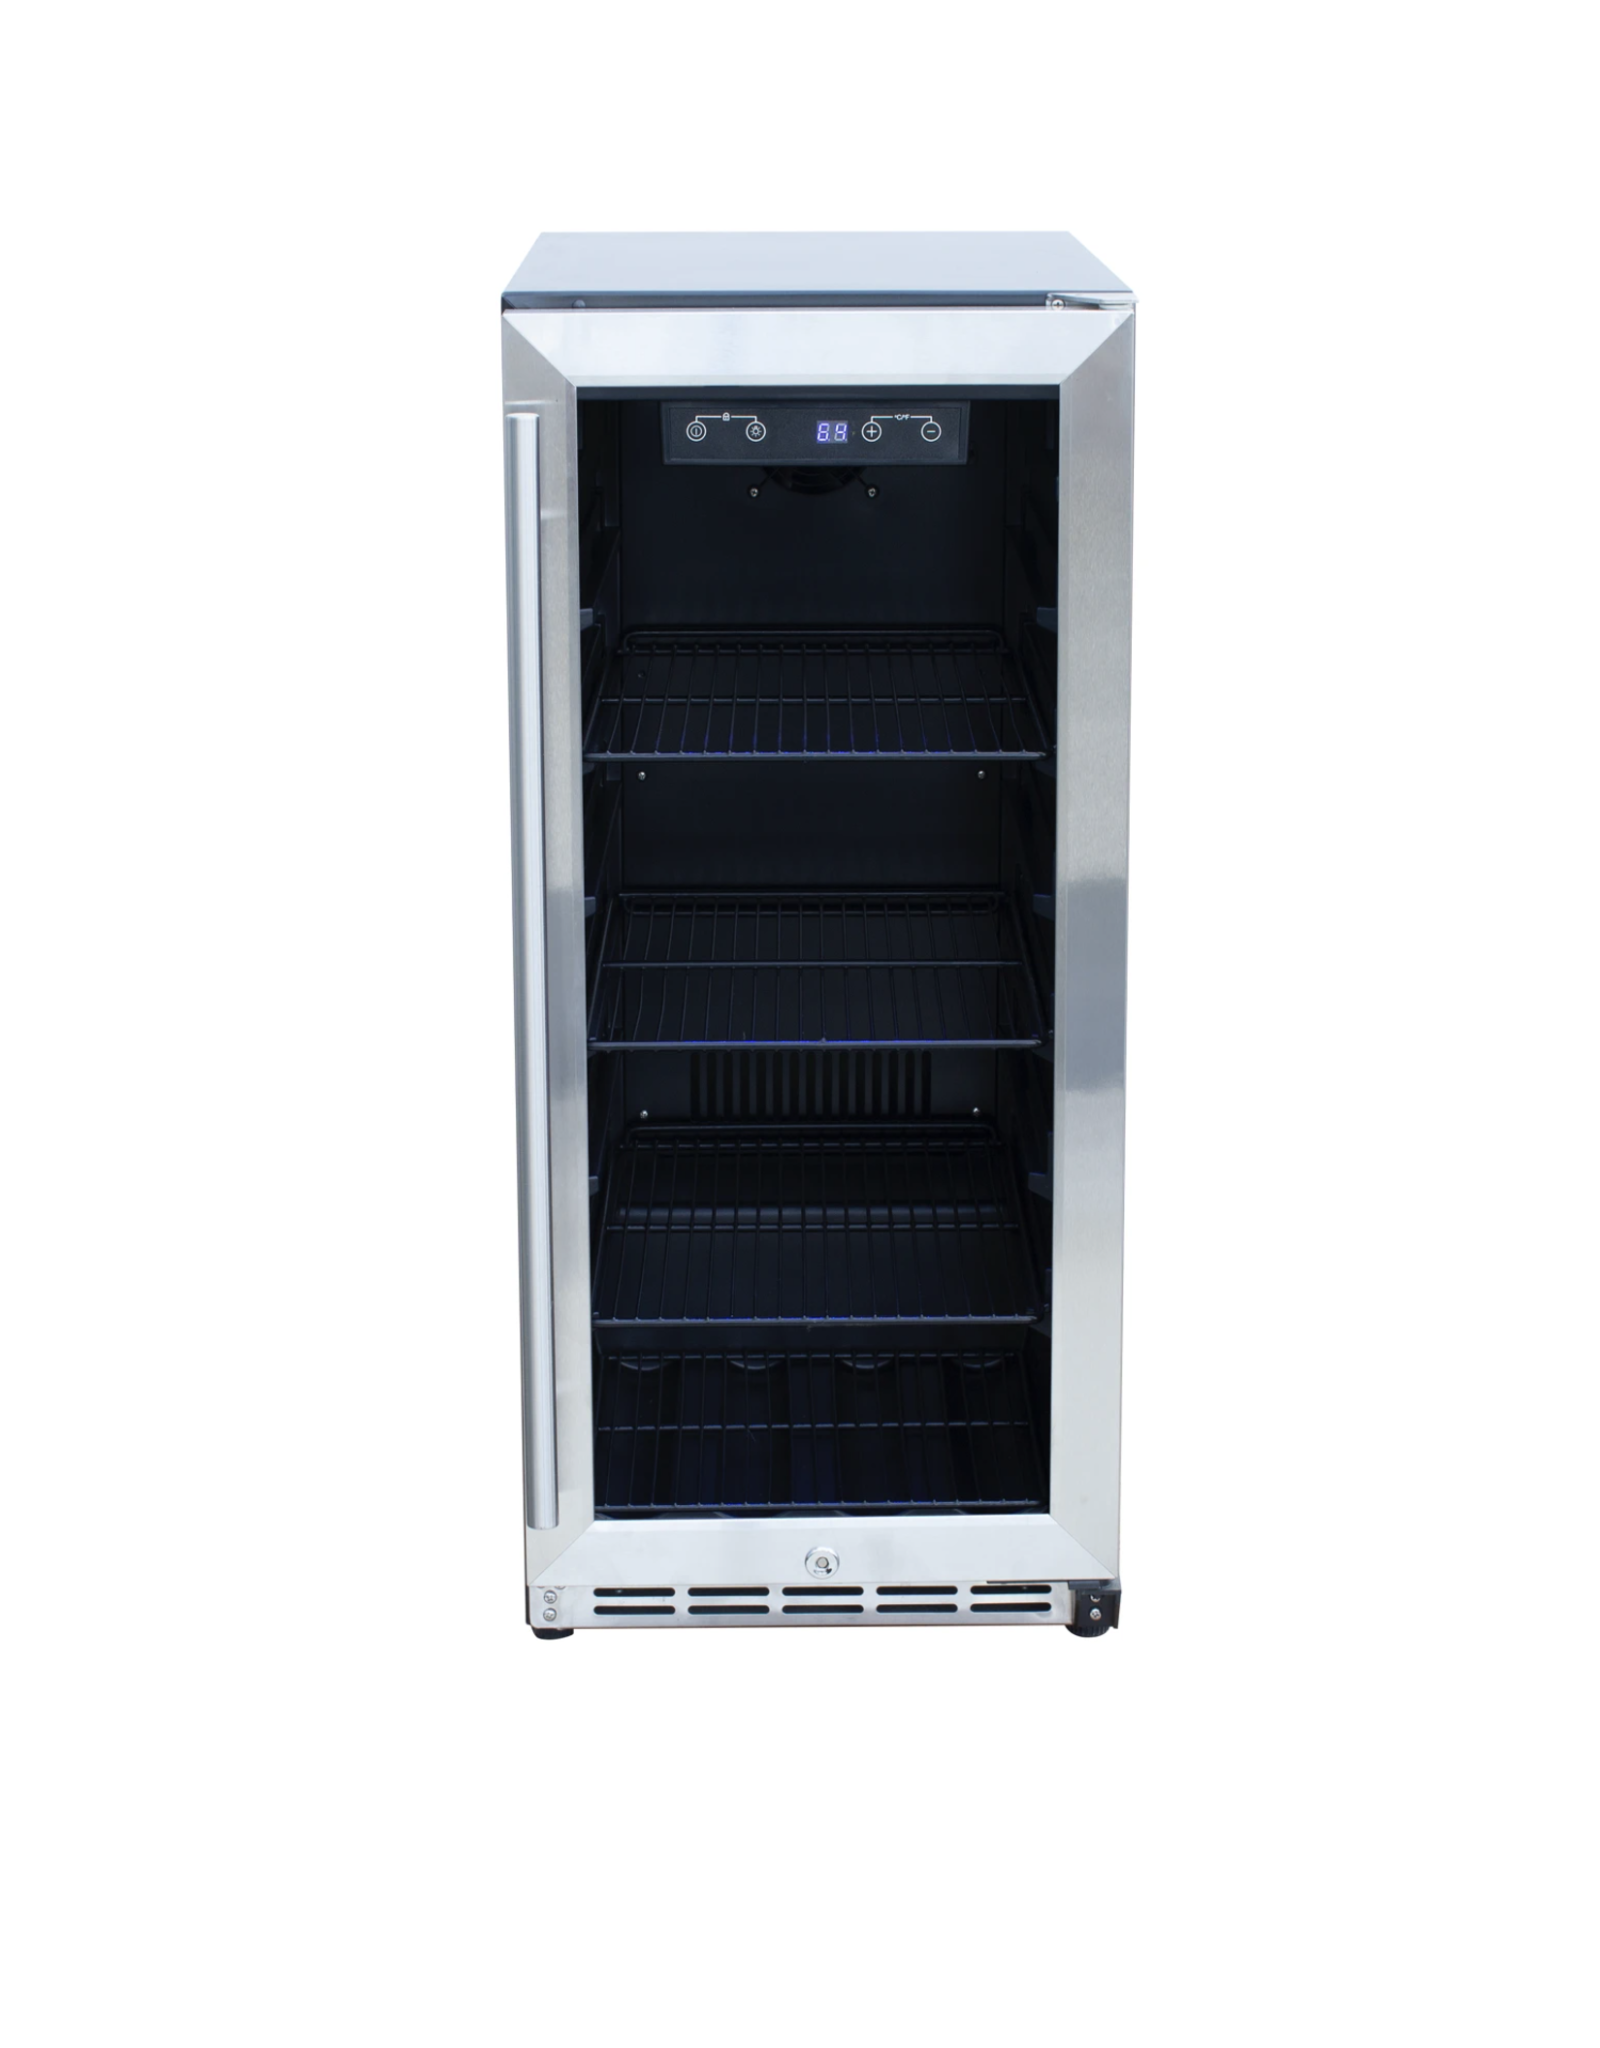 """Renaissance Cooking Systems Renaissance Cooking Systems 15"""" Refrigerator with Window - REFR5"""